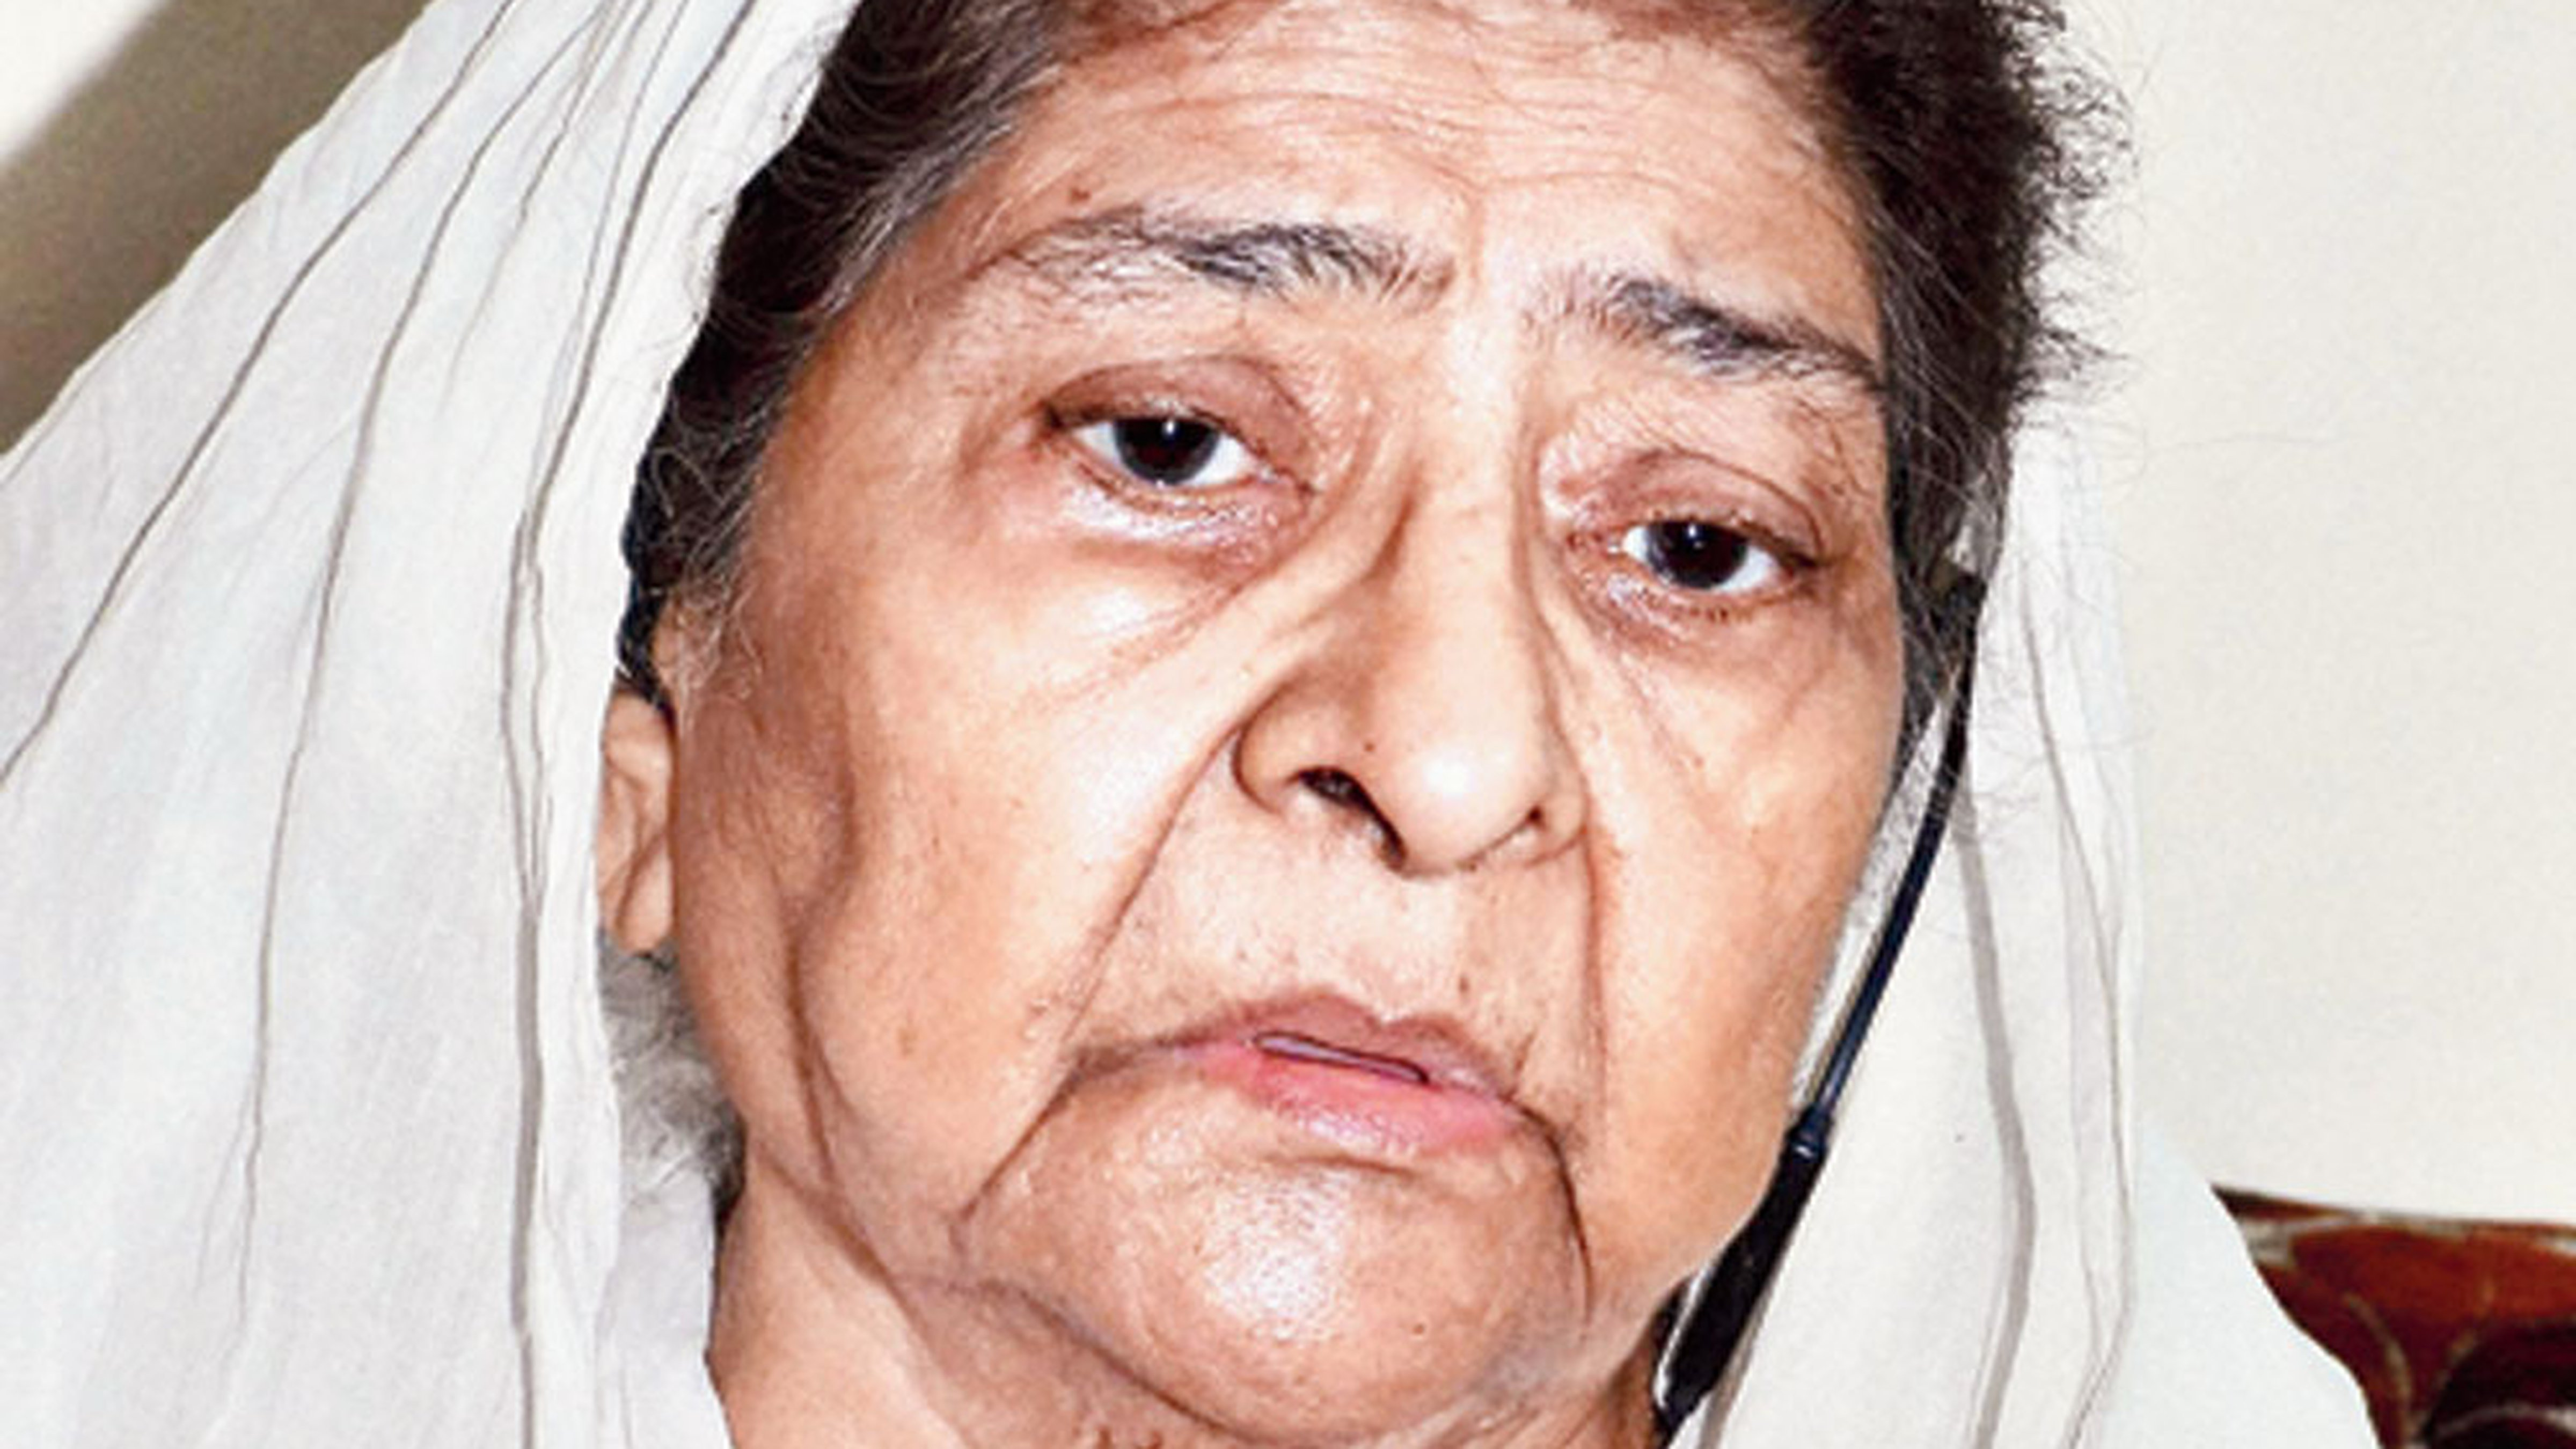 Zakia Jafri, the wife of ex-MP Ehsan Jafri who was one of the 68 killed in Ahmedabad's Gulberg society during the Gujarat riots.